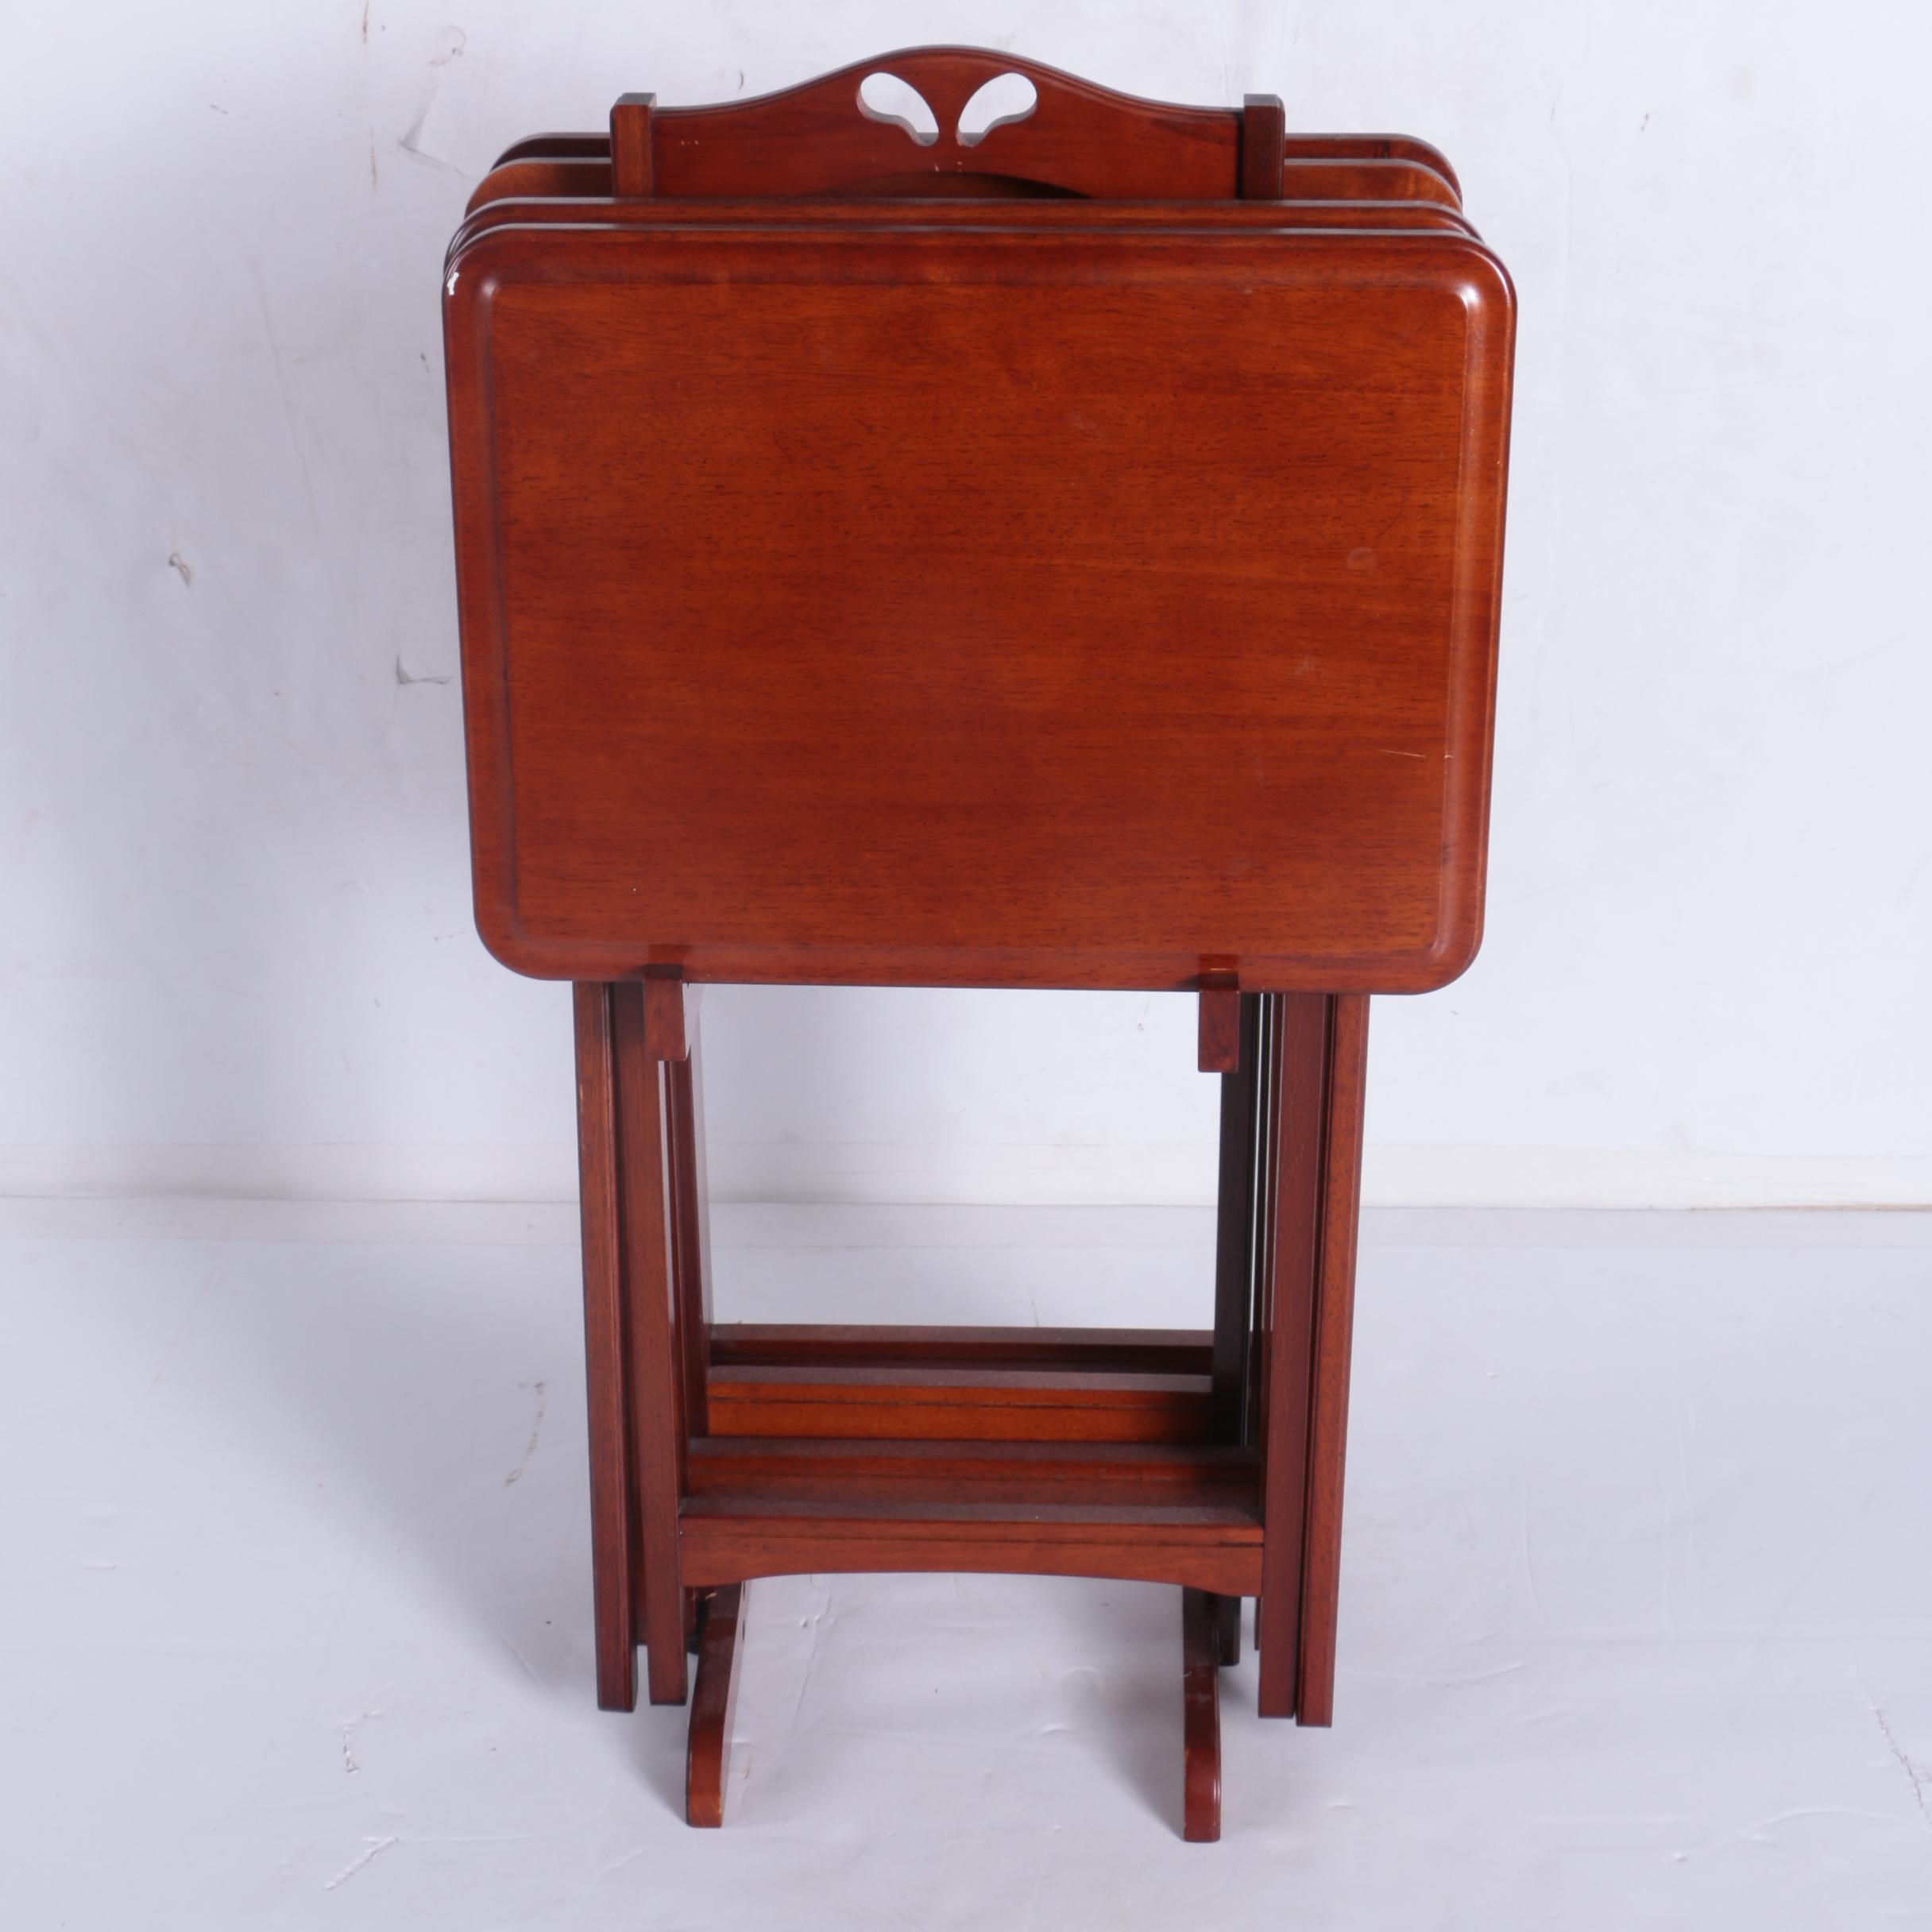 Mahogany-Stained TV Trays with Rack